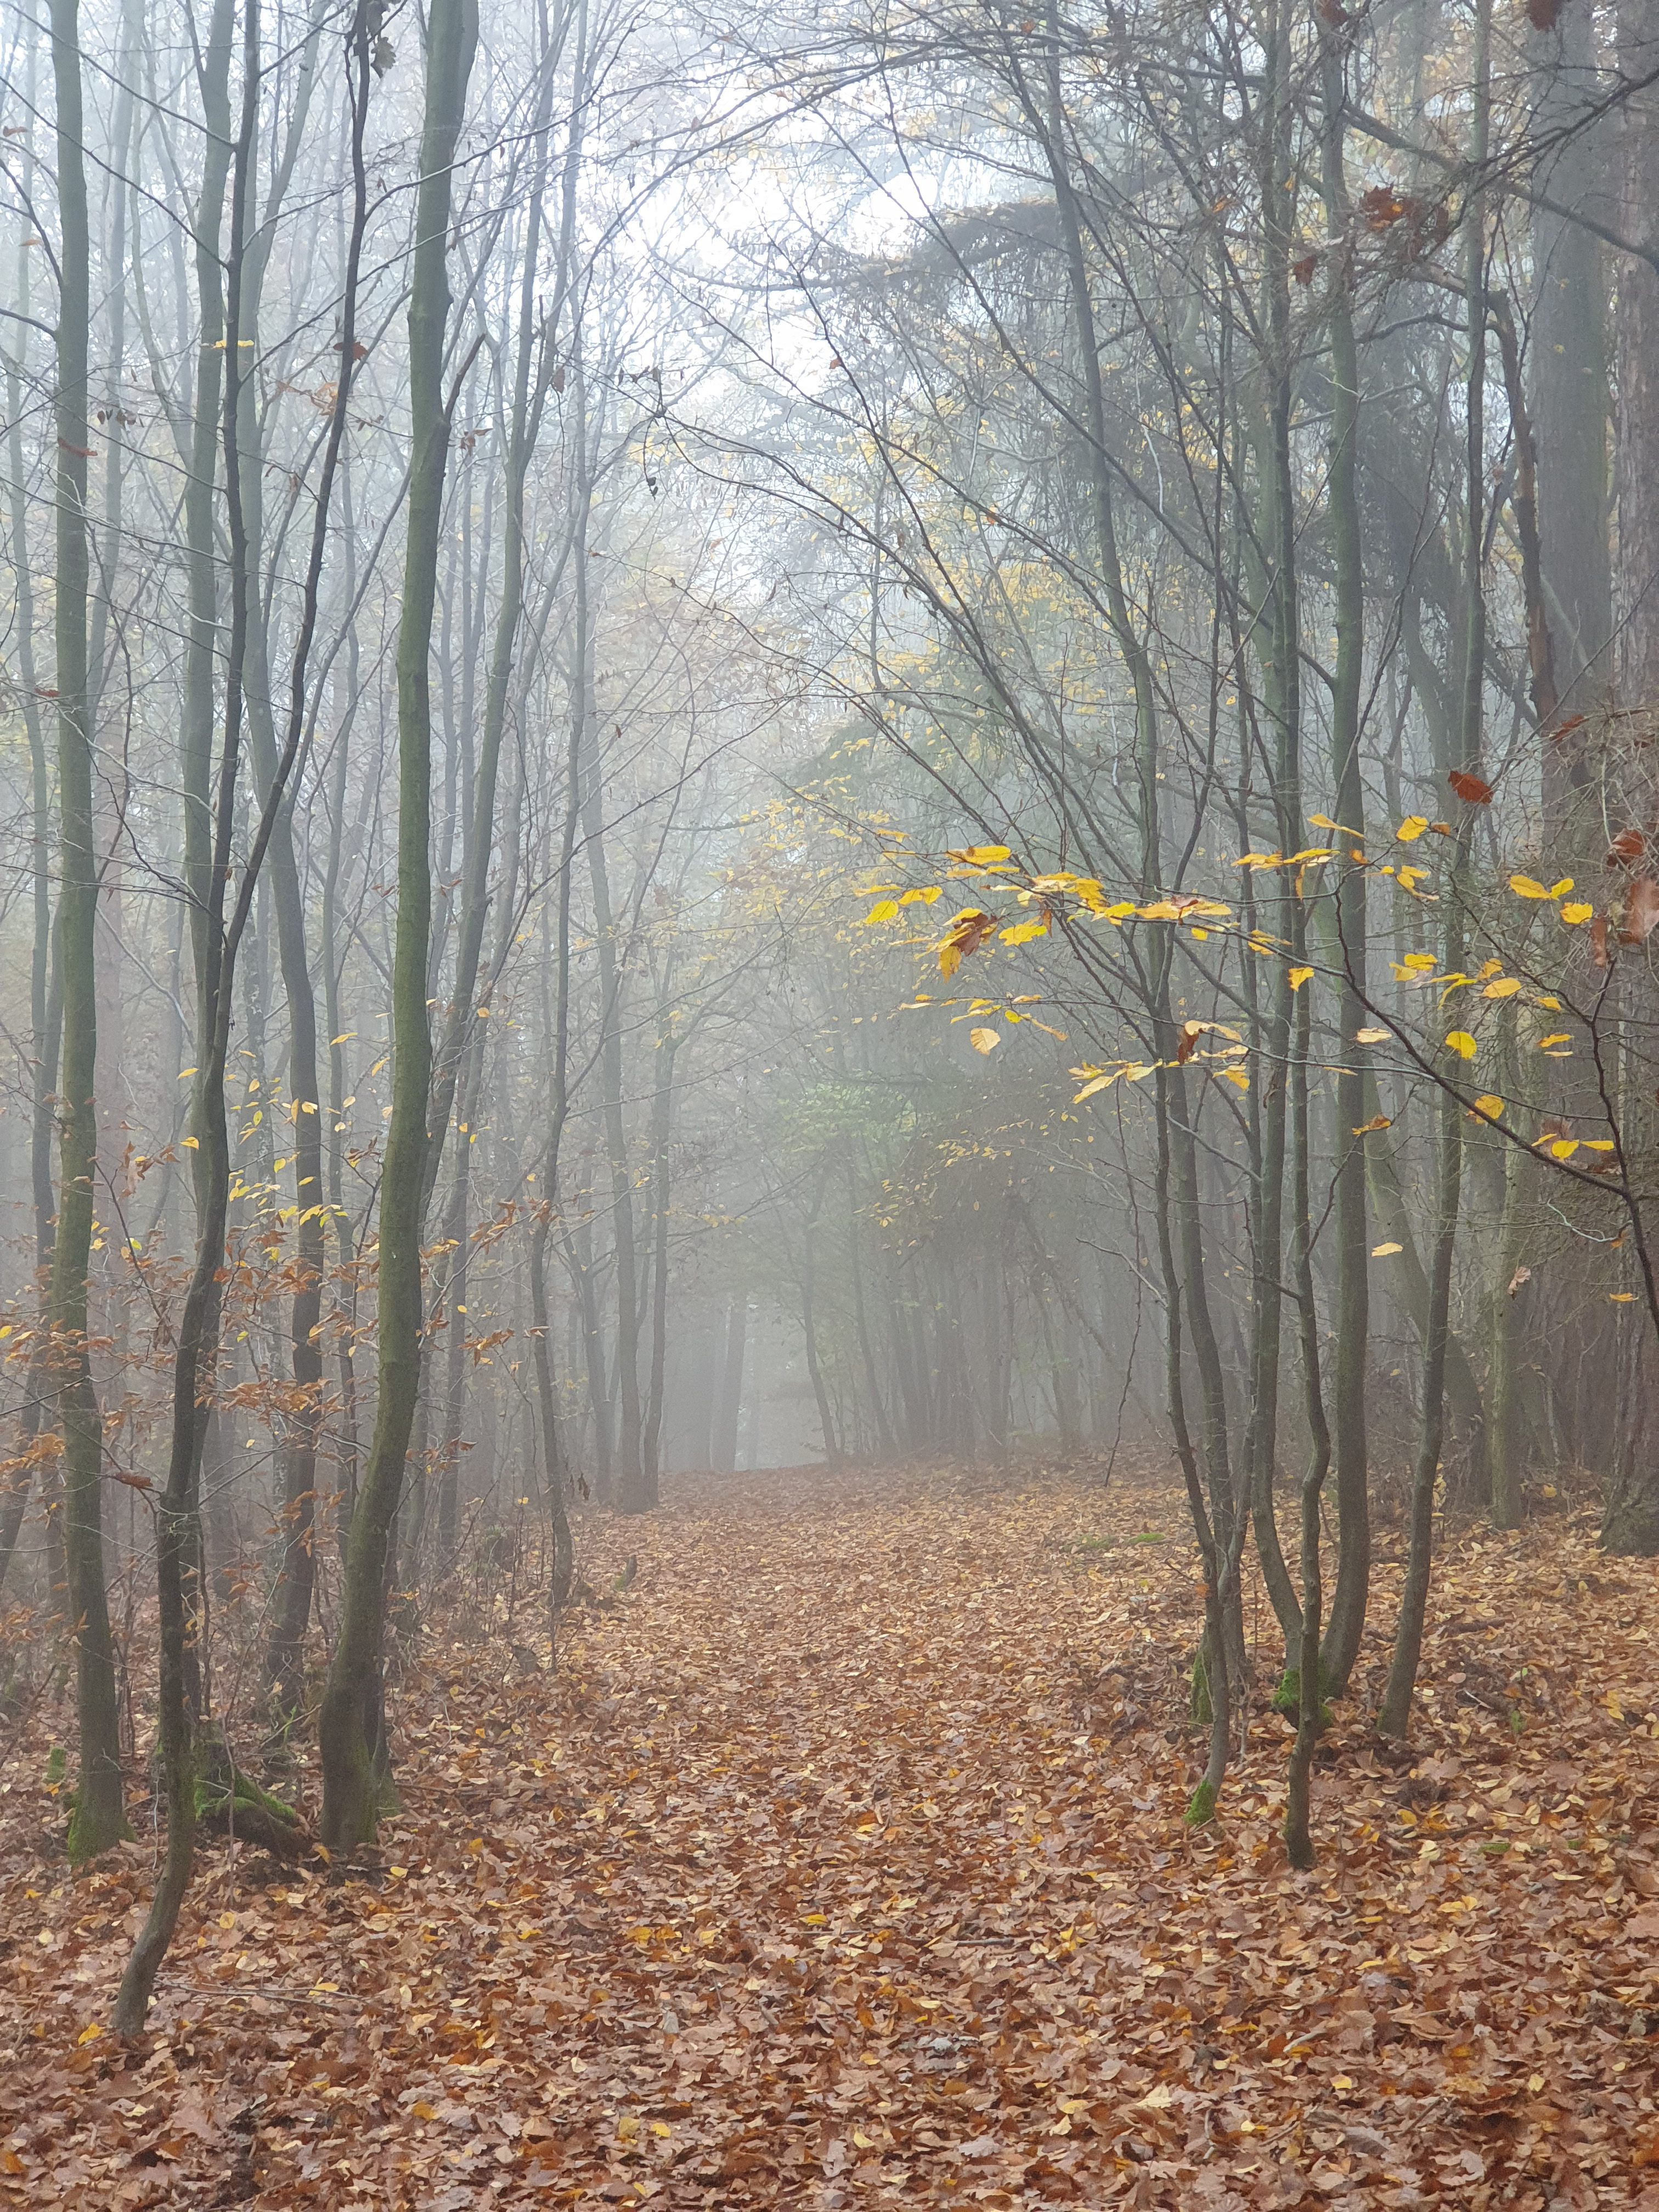 113468 download wallpaper Nature, Forest, Fog, Trees, Autumn screensavers and pictures for free